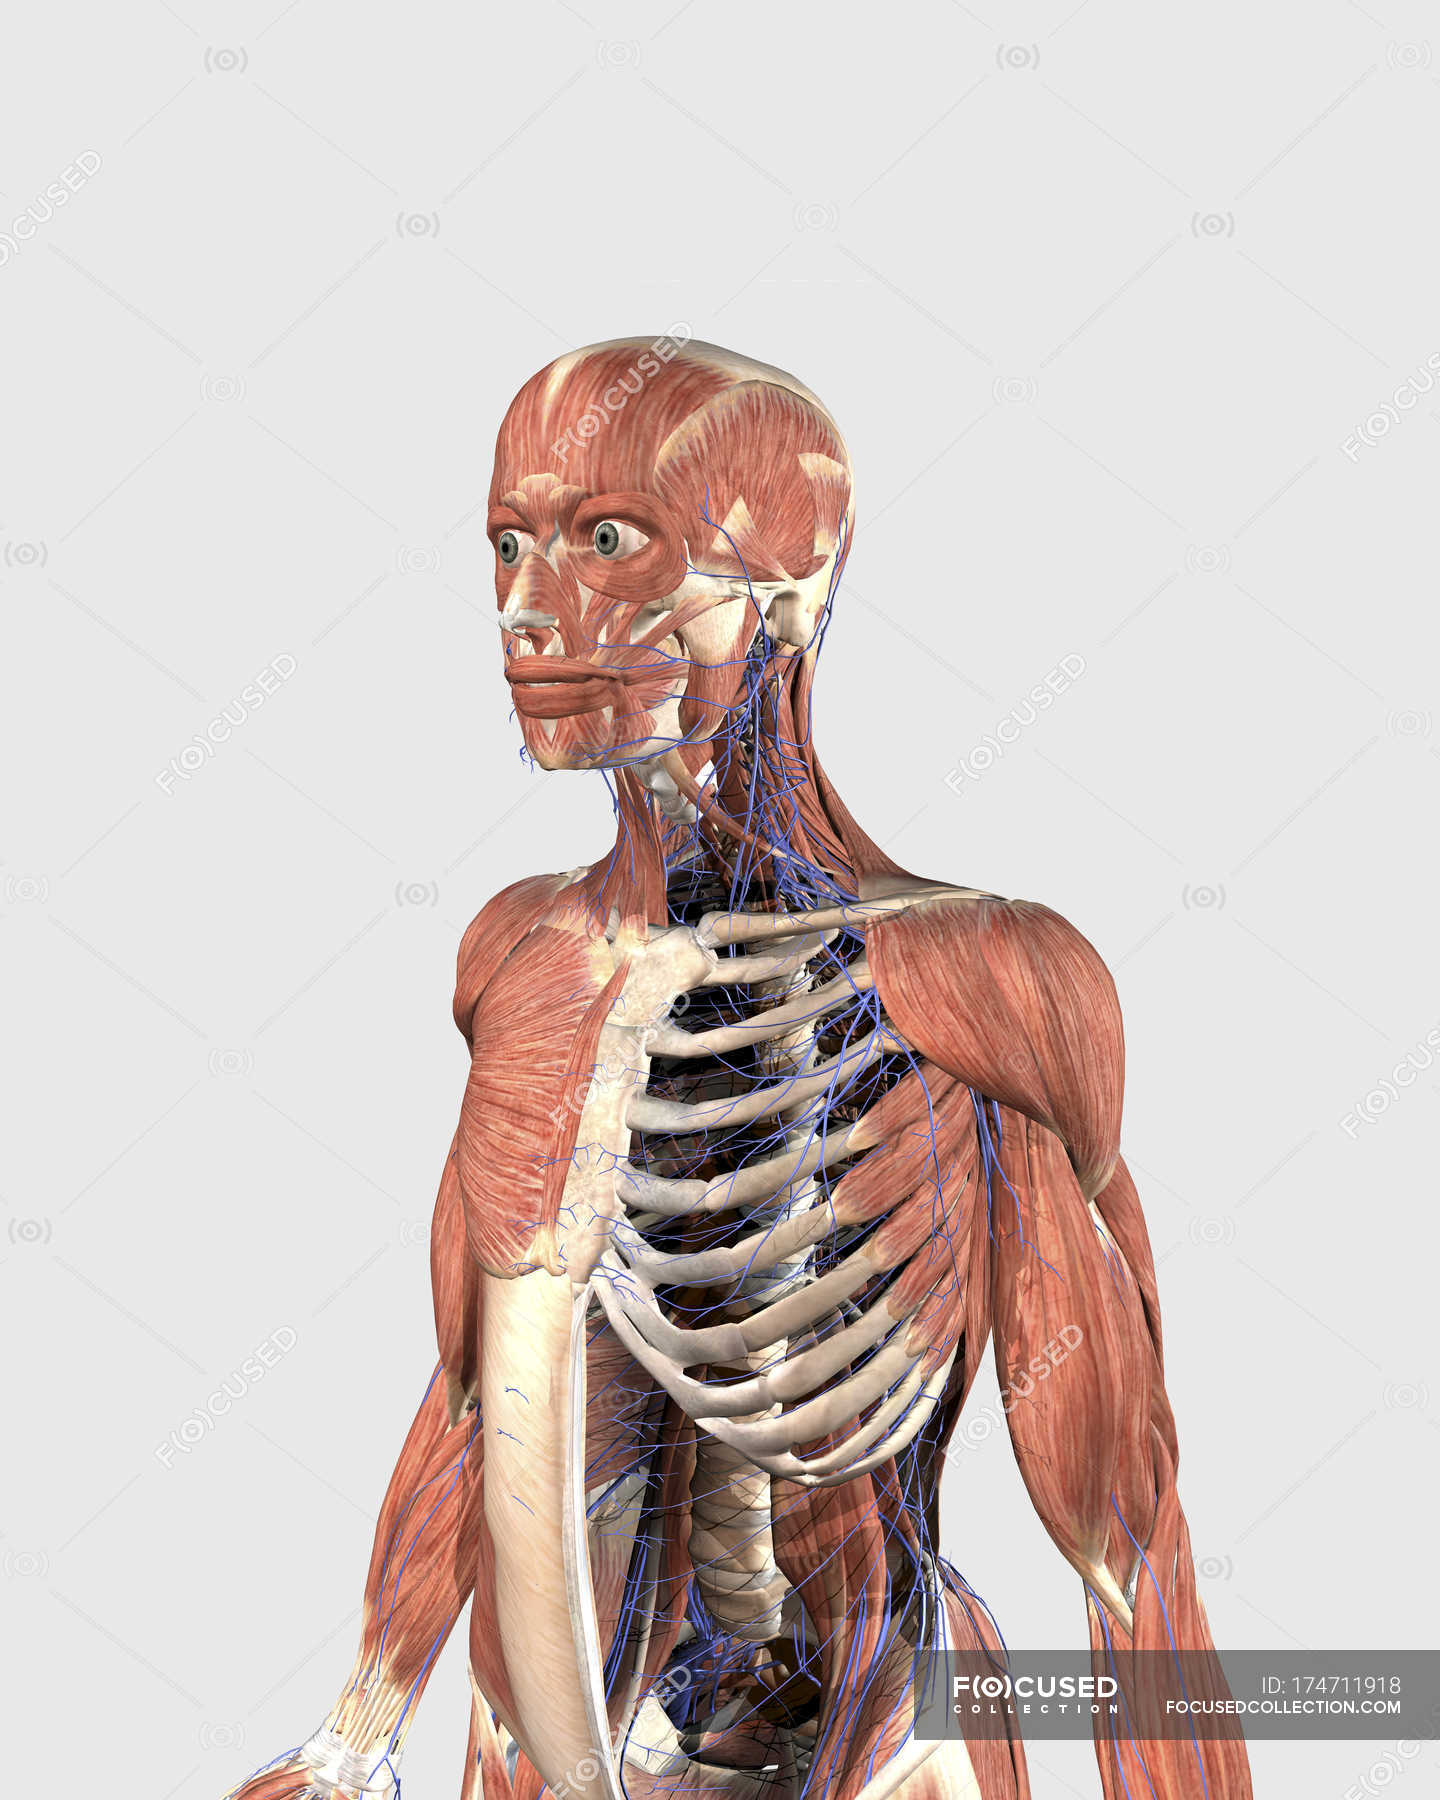 Human Upper Body With Muscle Parts Axial Skeleton And Veins White